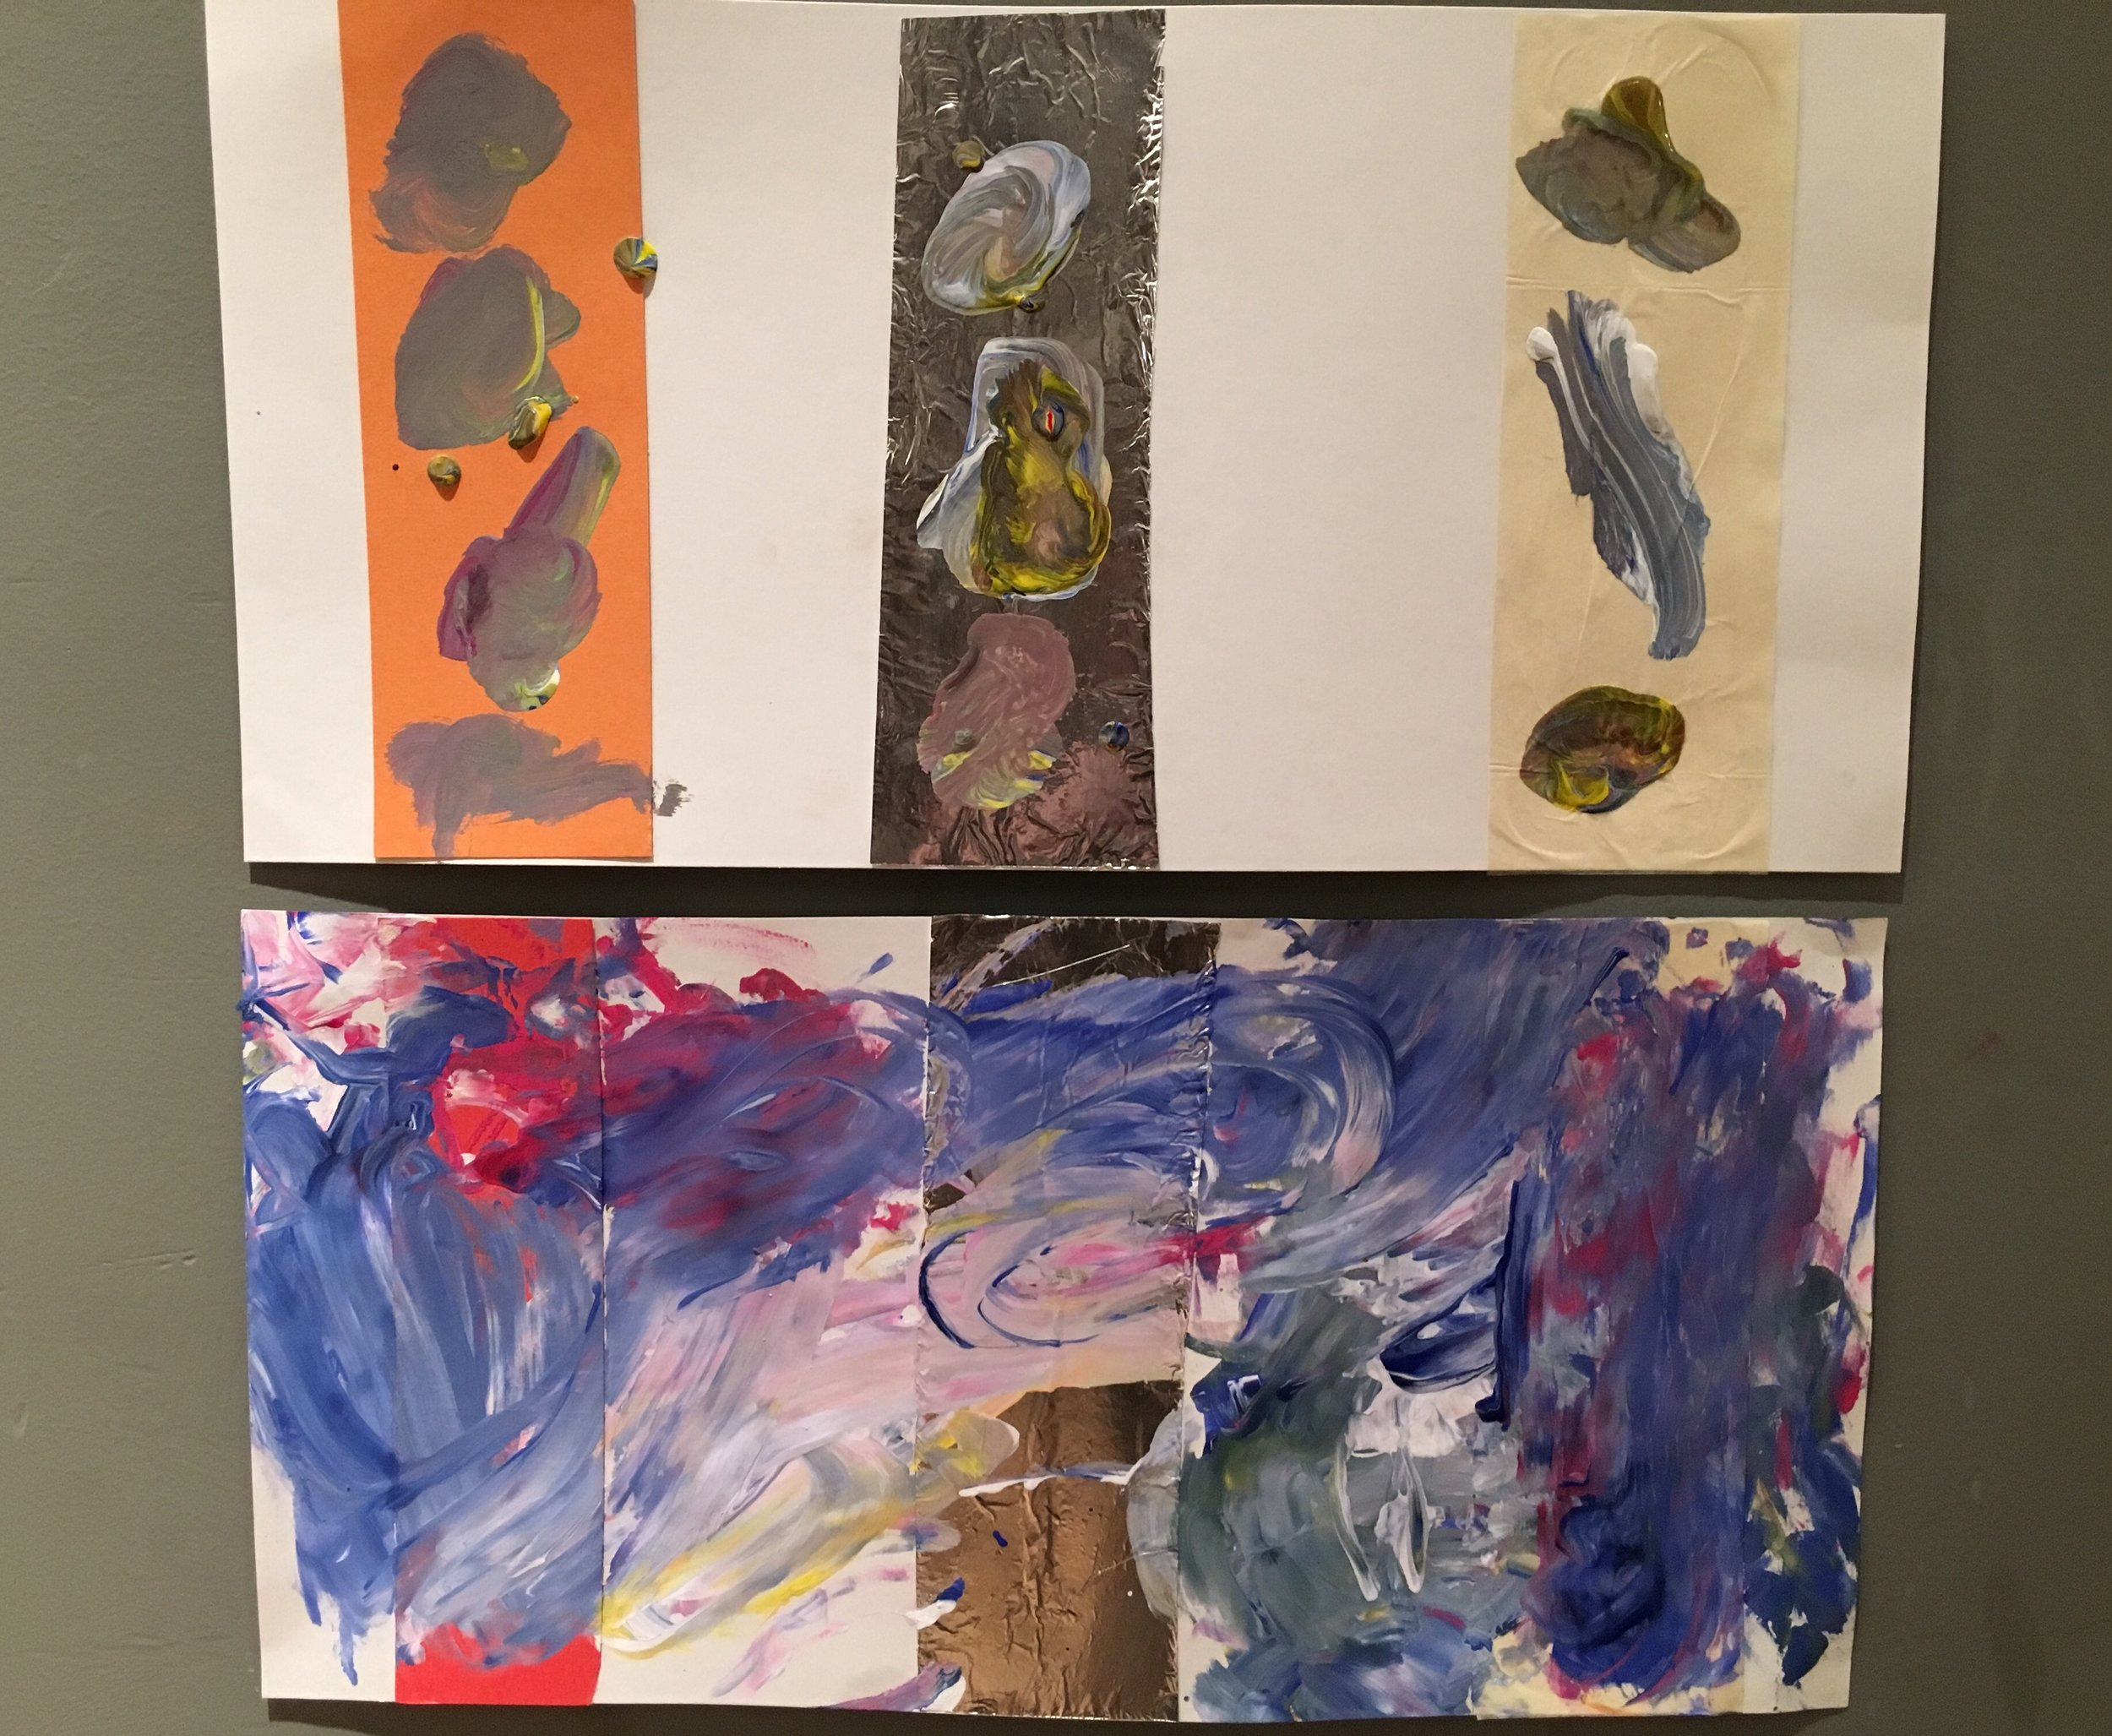 Choice based painting process- documentation of the comparison of two 2.5 year old's paintings